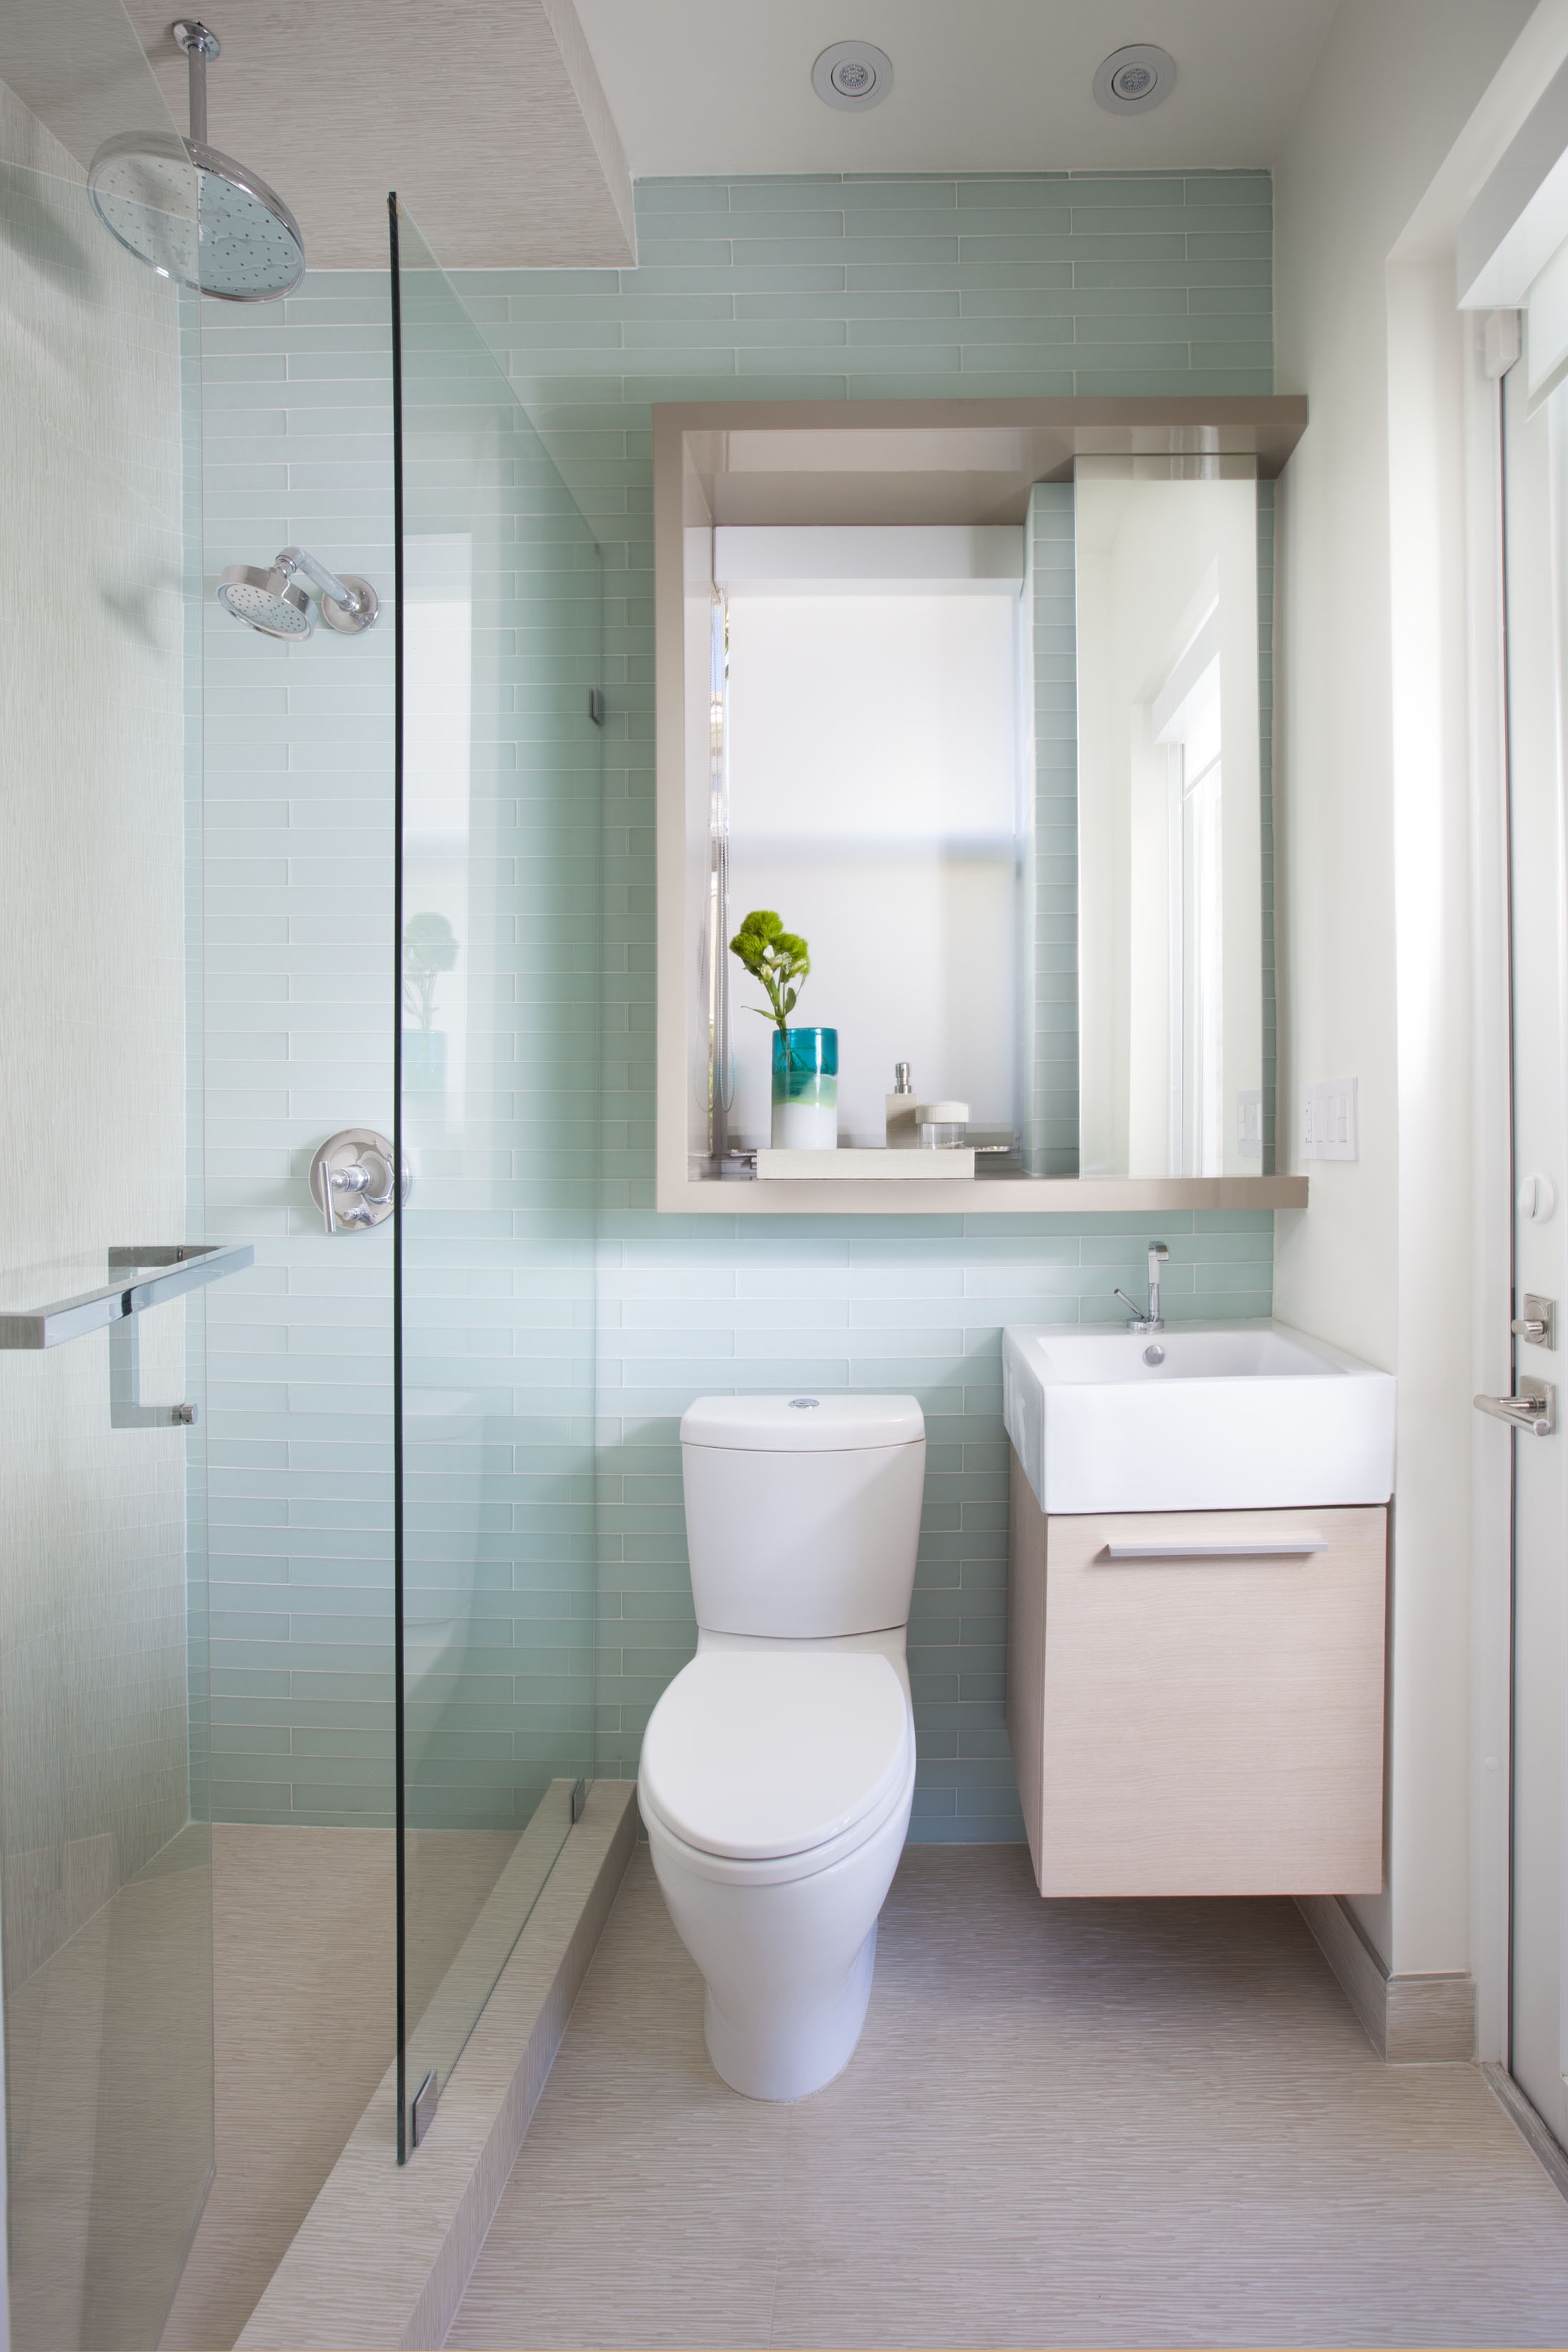 Contemporary Tiny Bathroom Features Light Blue Subway Tile Wall (Image 5 of 14)